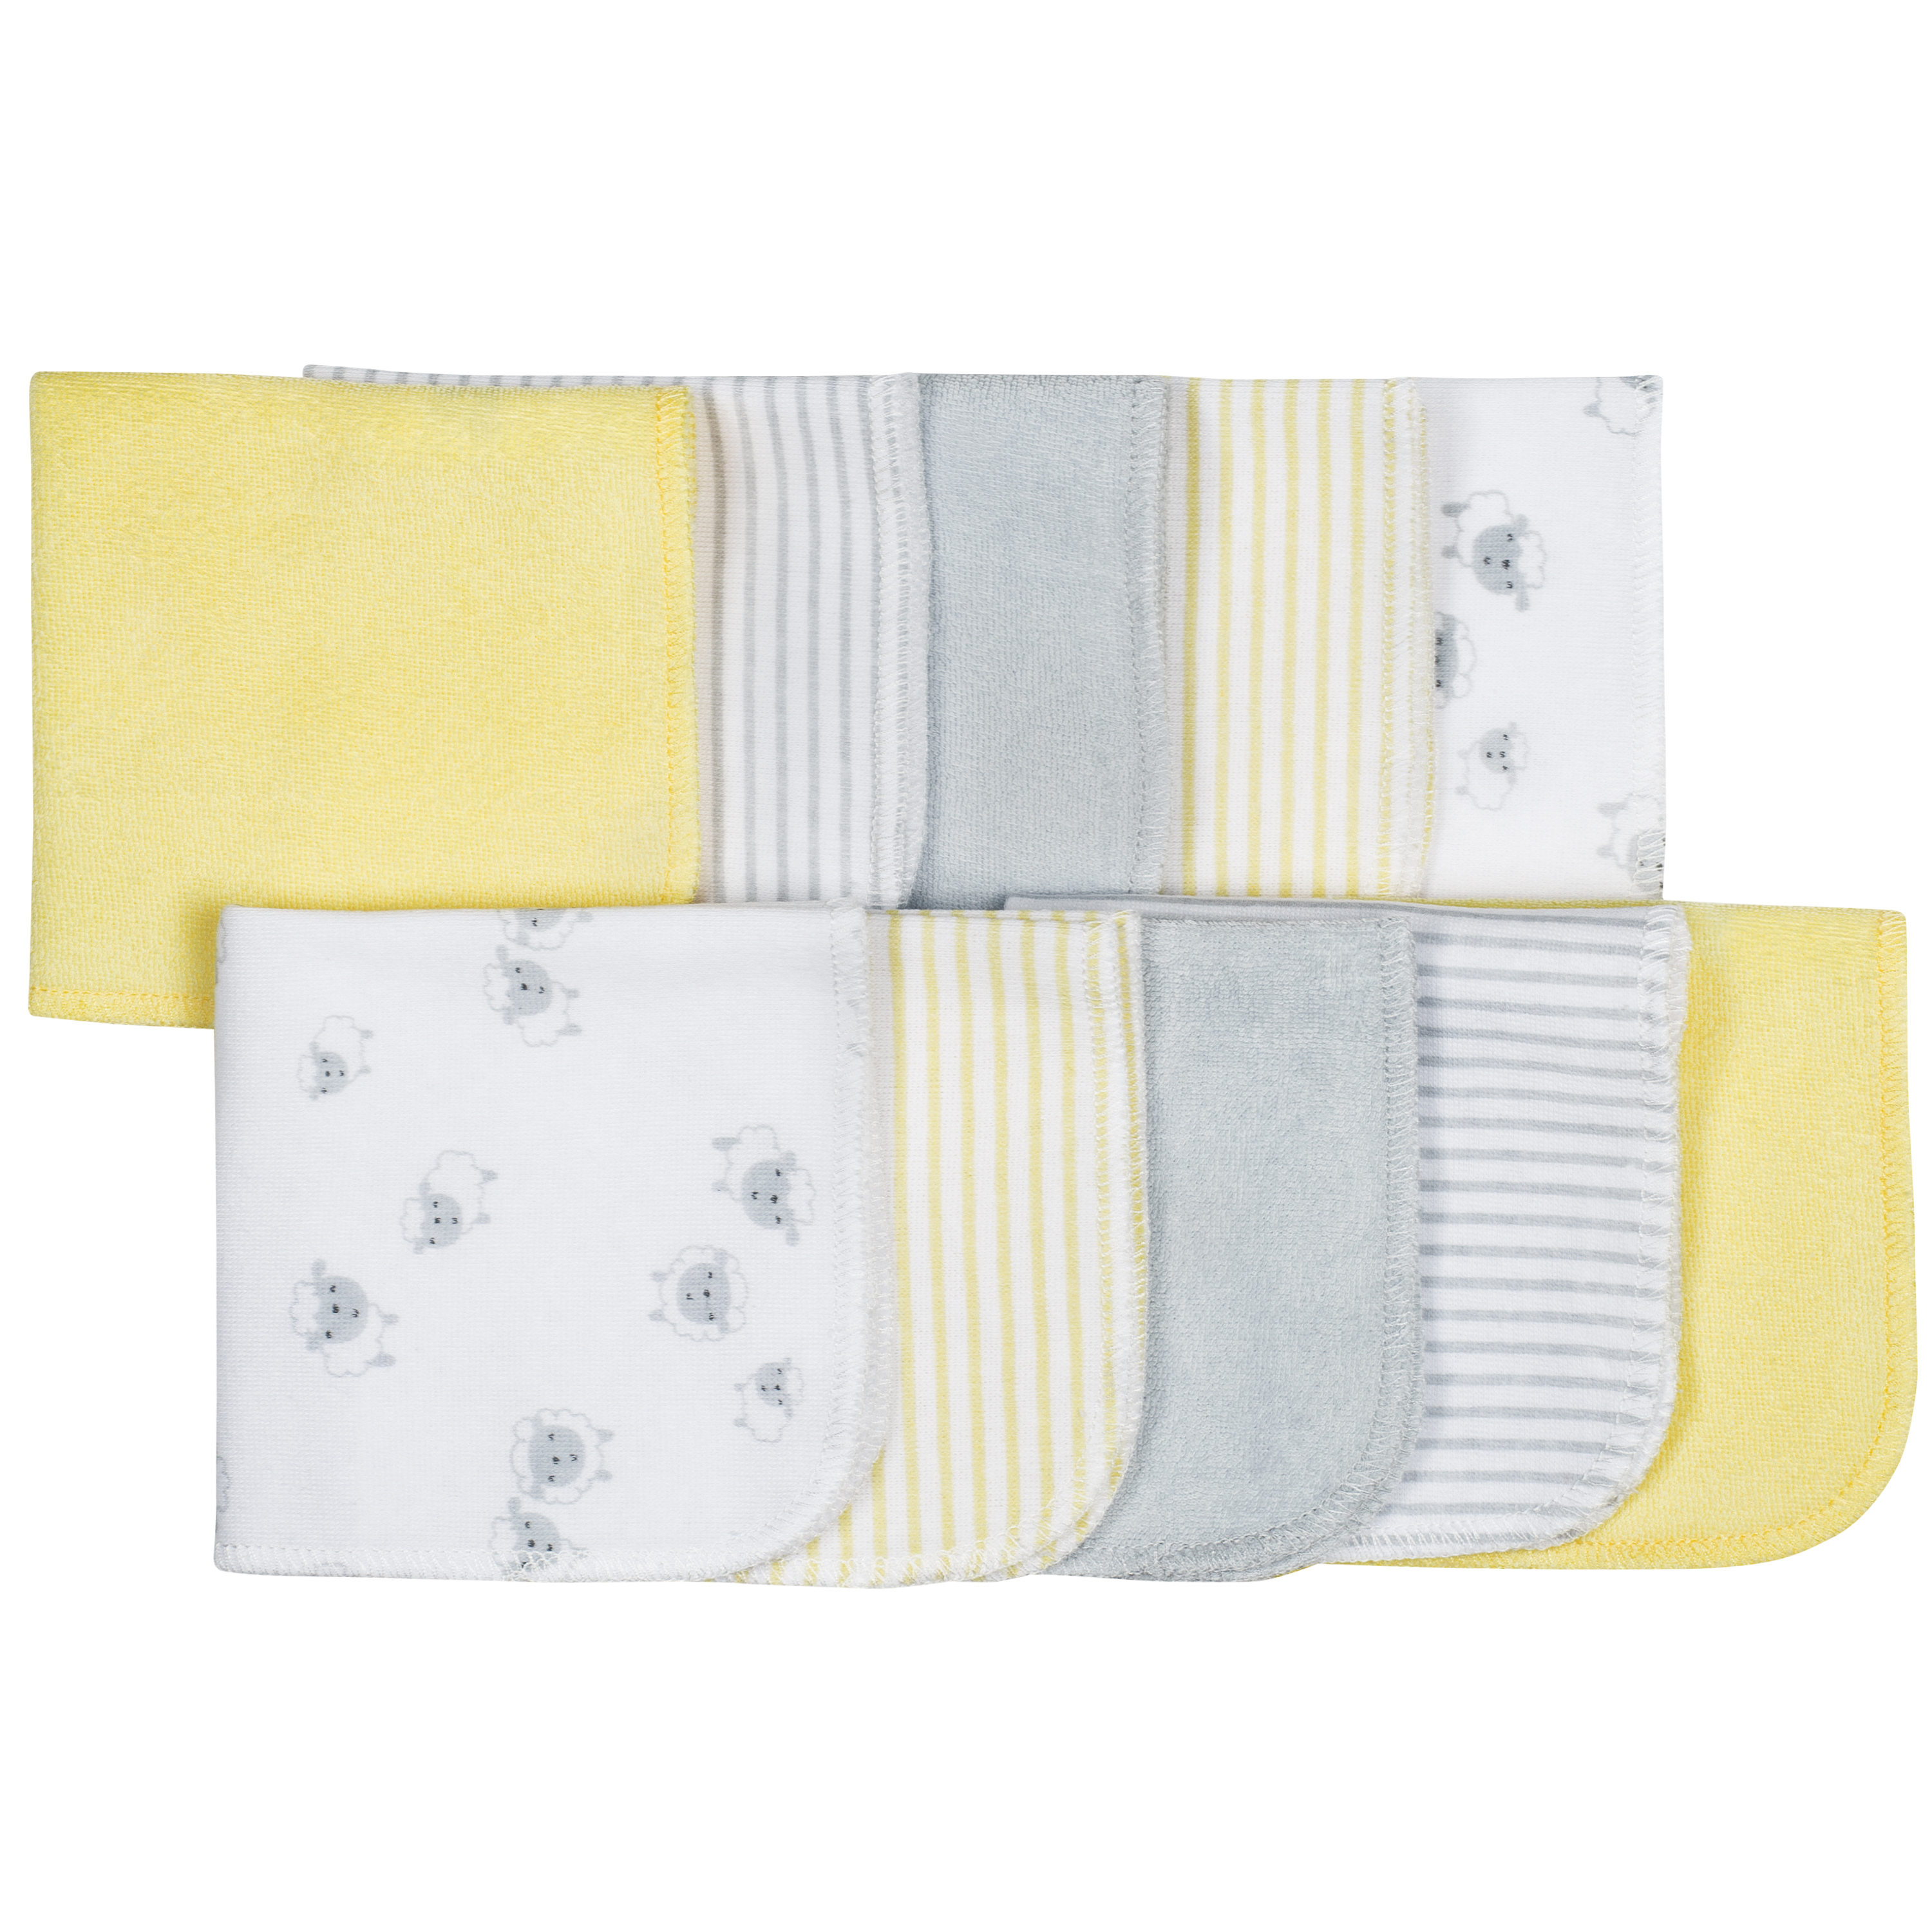 Gerber Baby Assorted Terry Washcloths, Lamb, 10 Pack